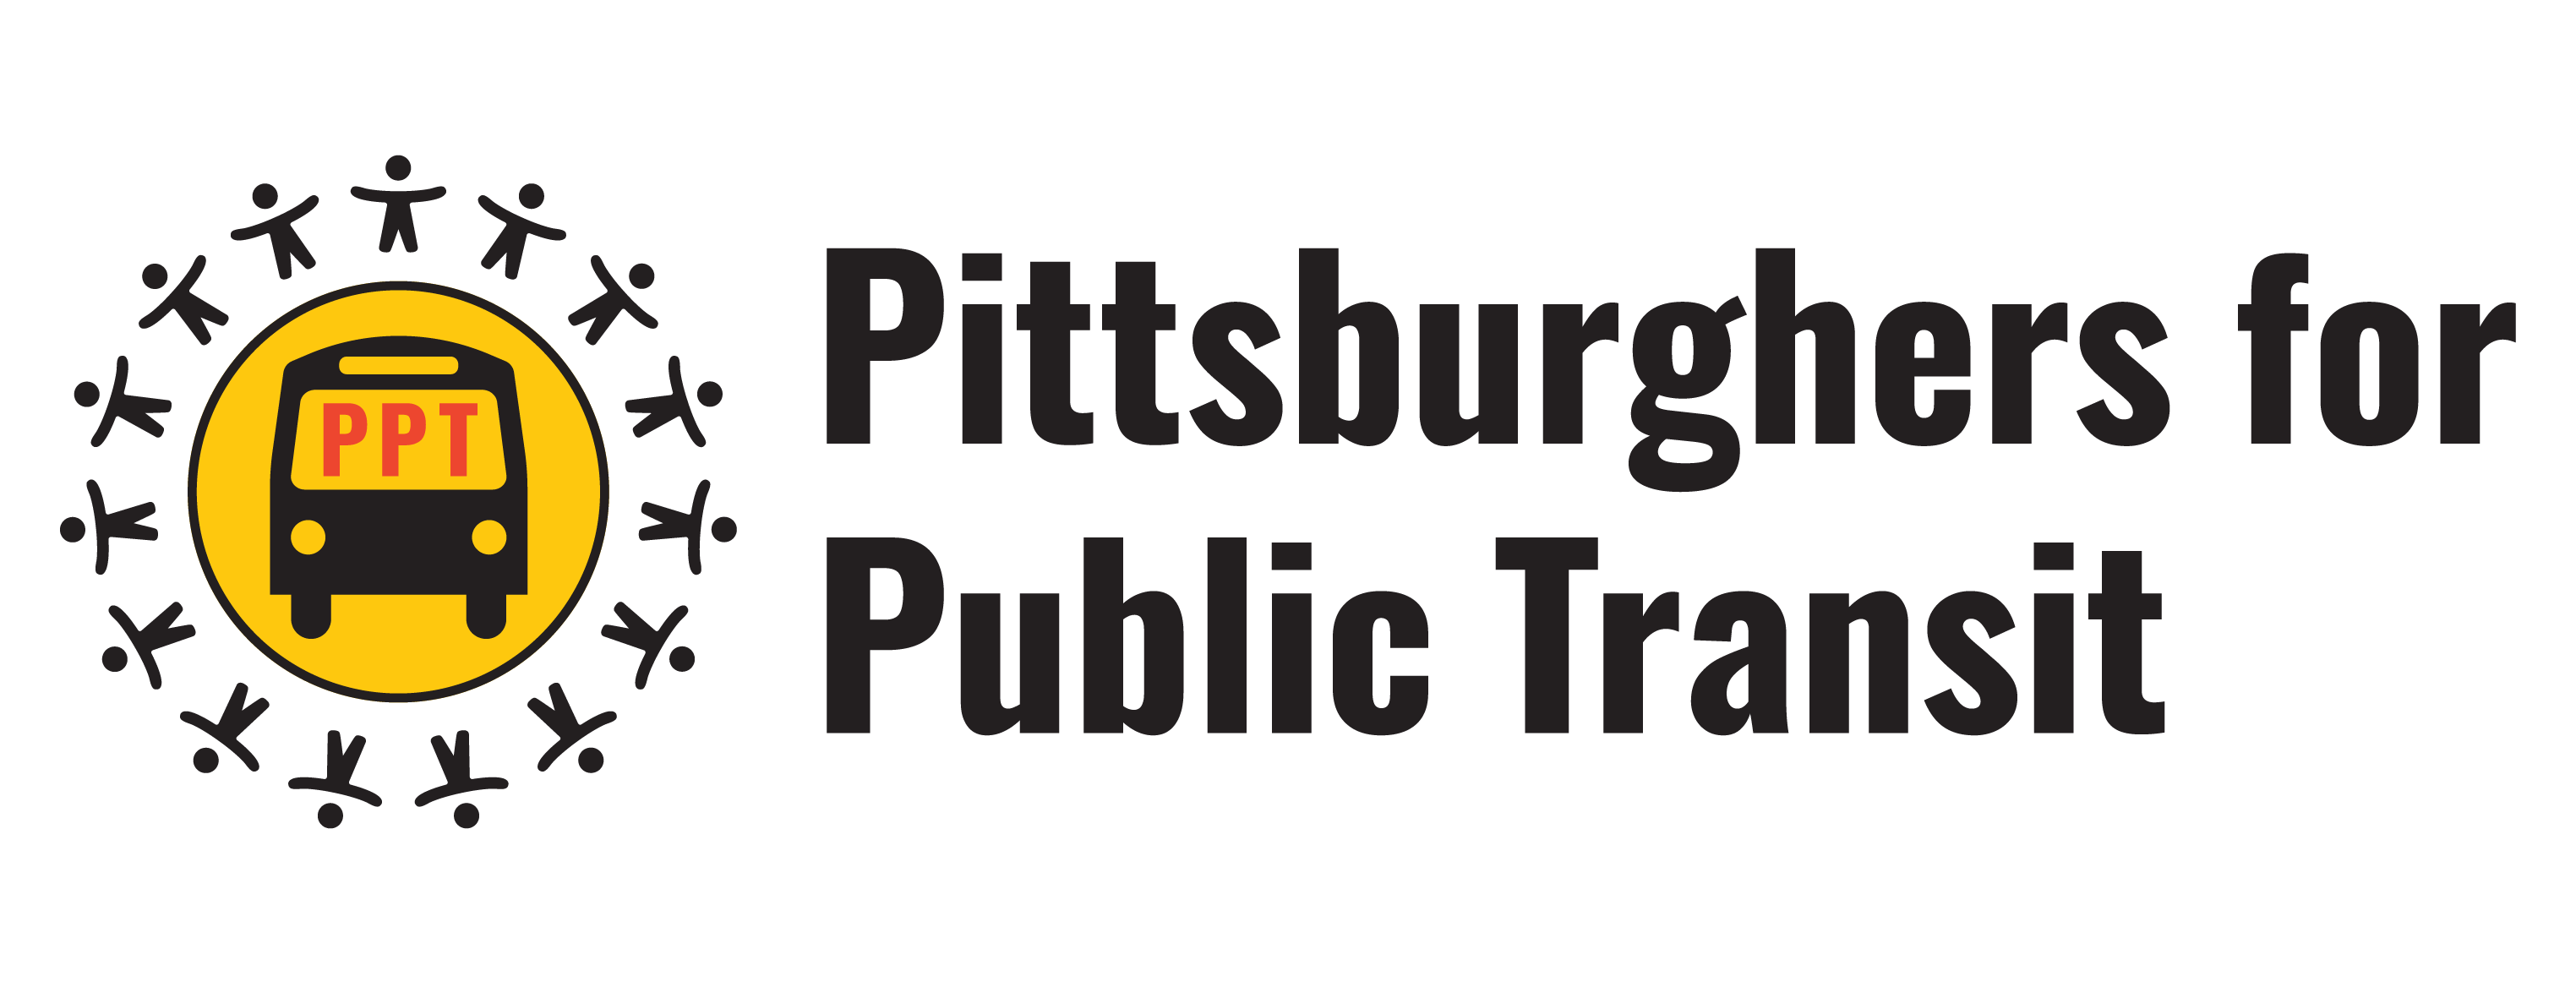 Pittsburghers for Public Transit